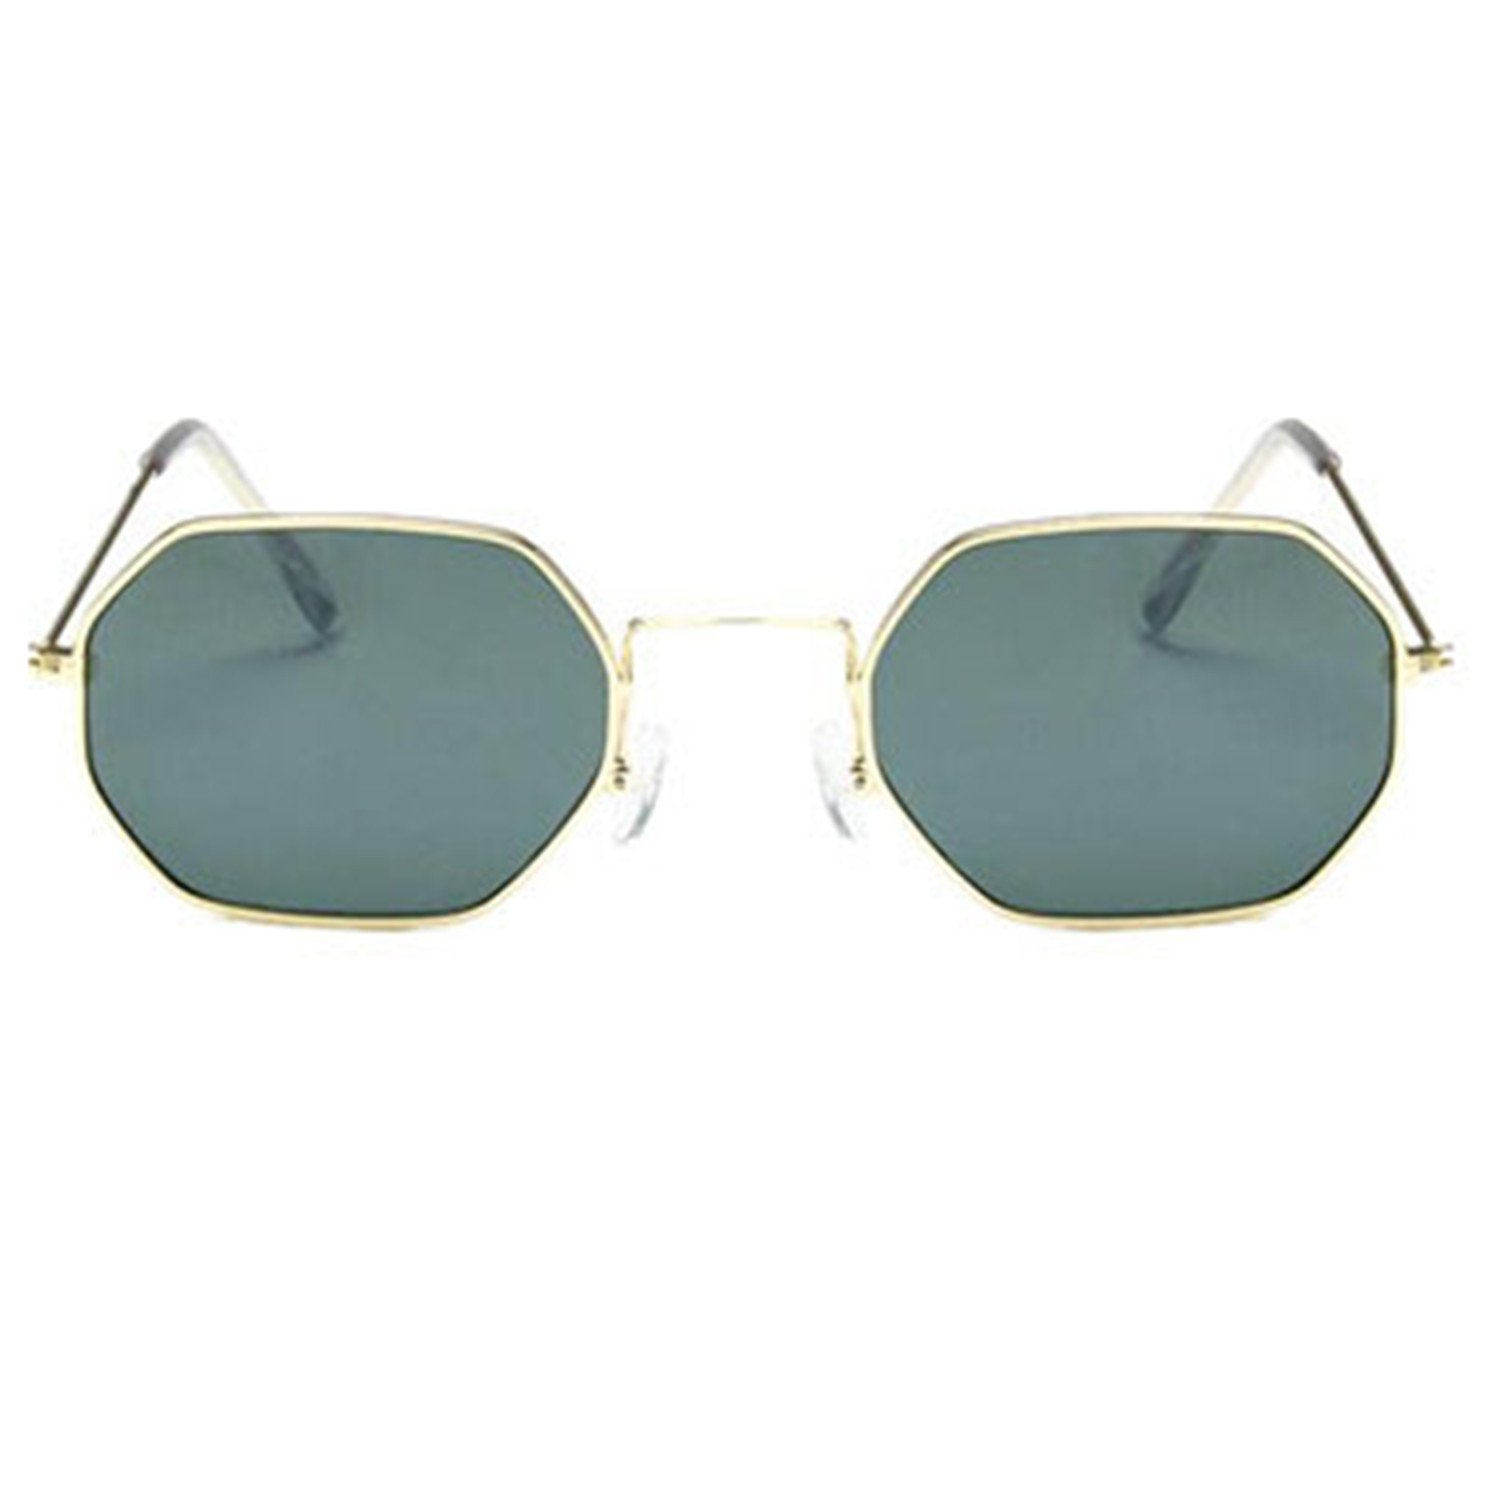 2555b75e5ae Amazon.com  nboba Fashion Sunglasses Women Small Frame Polygon Clear Lens  Sunglasses Men Sun Glasses Hexagon Metal Frame Green  Clothing